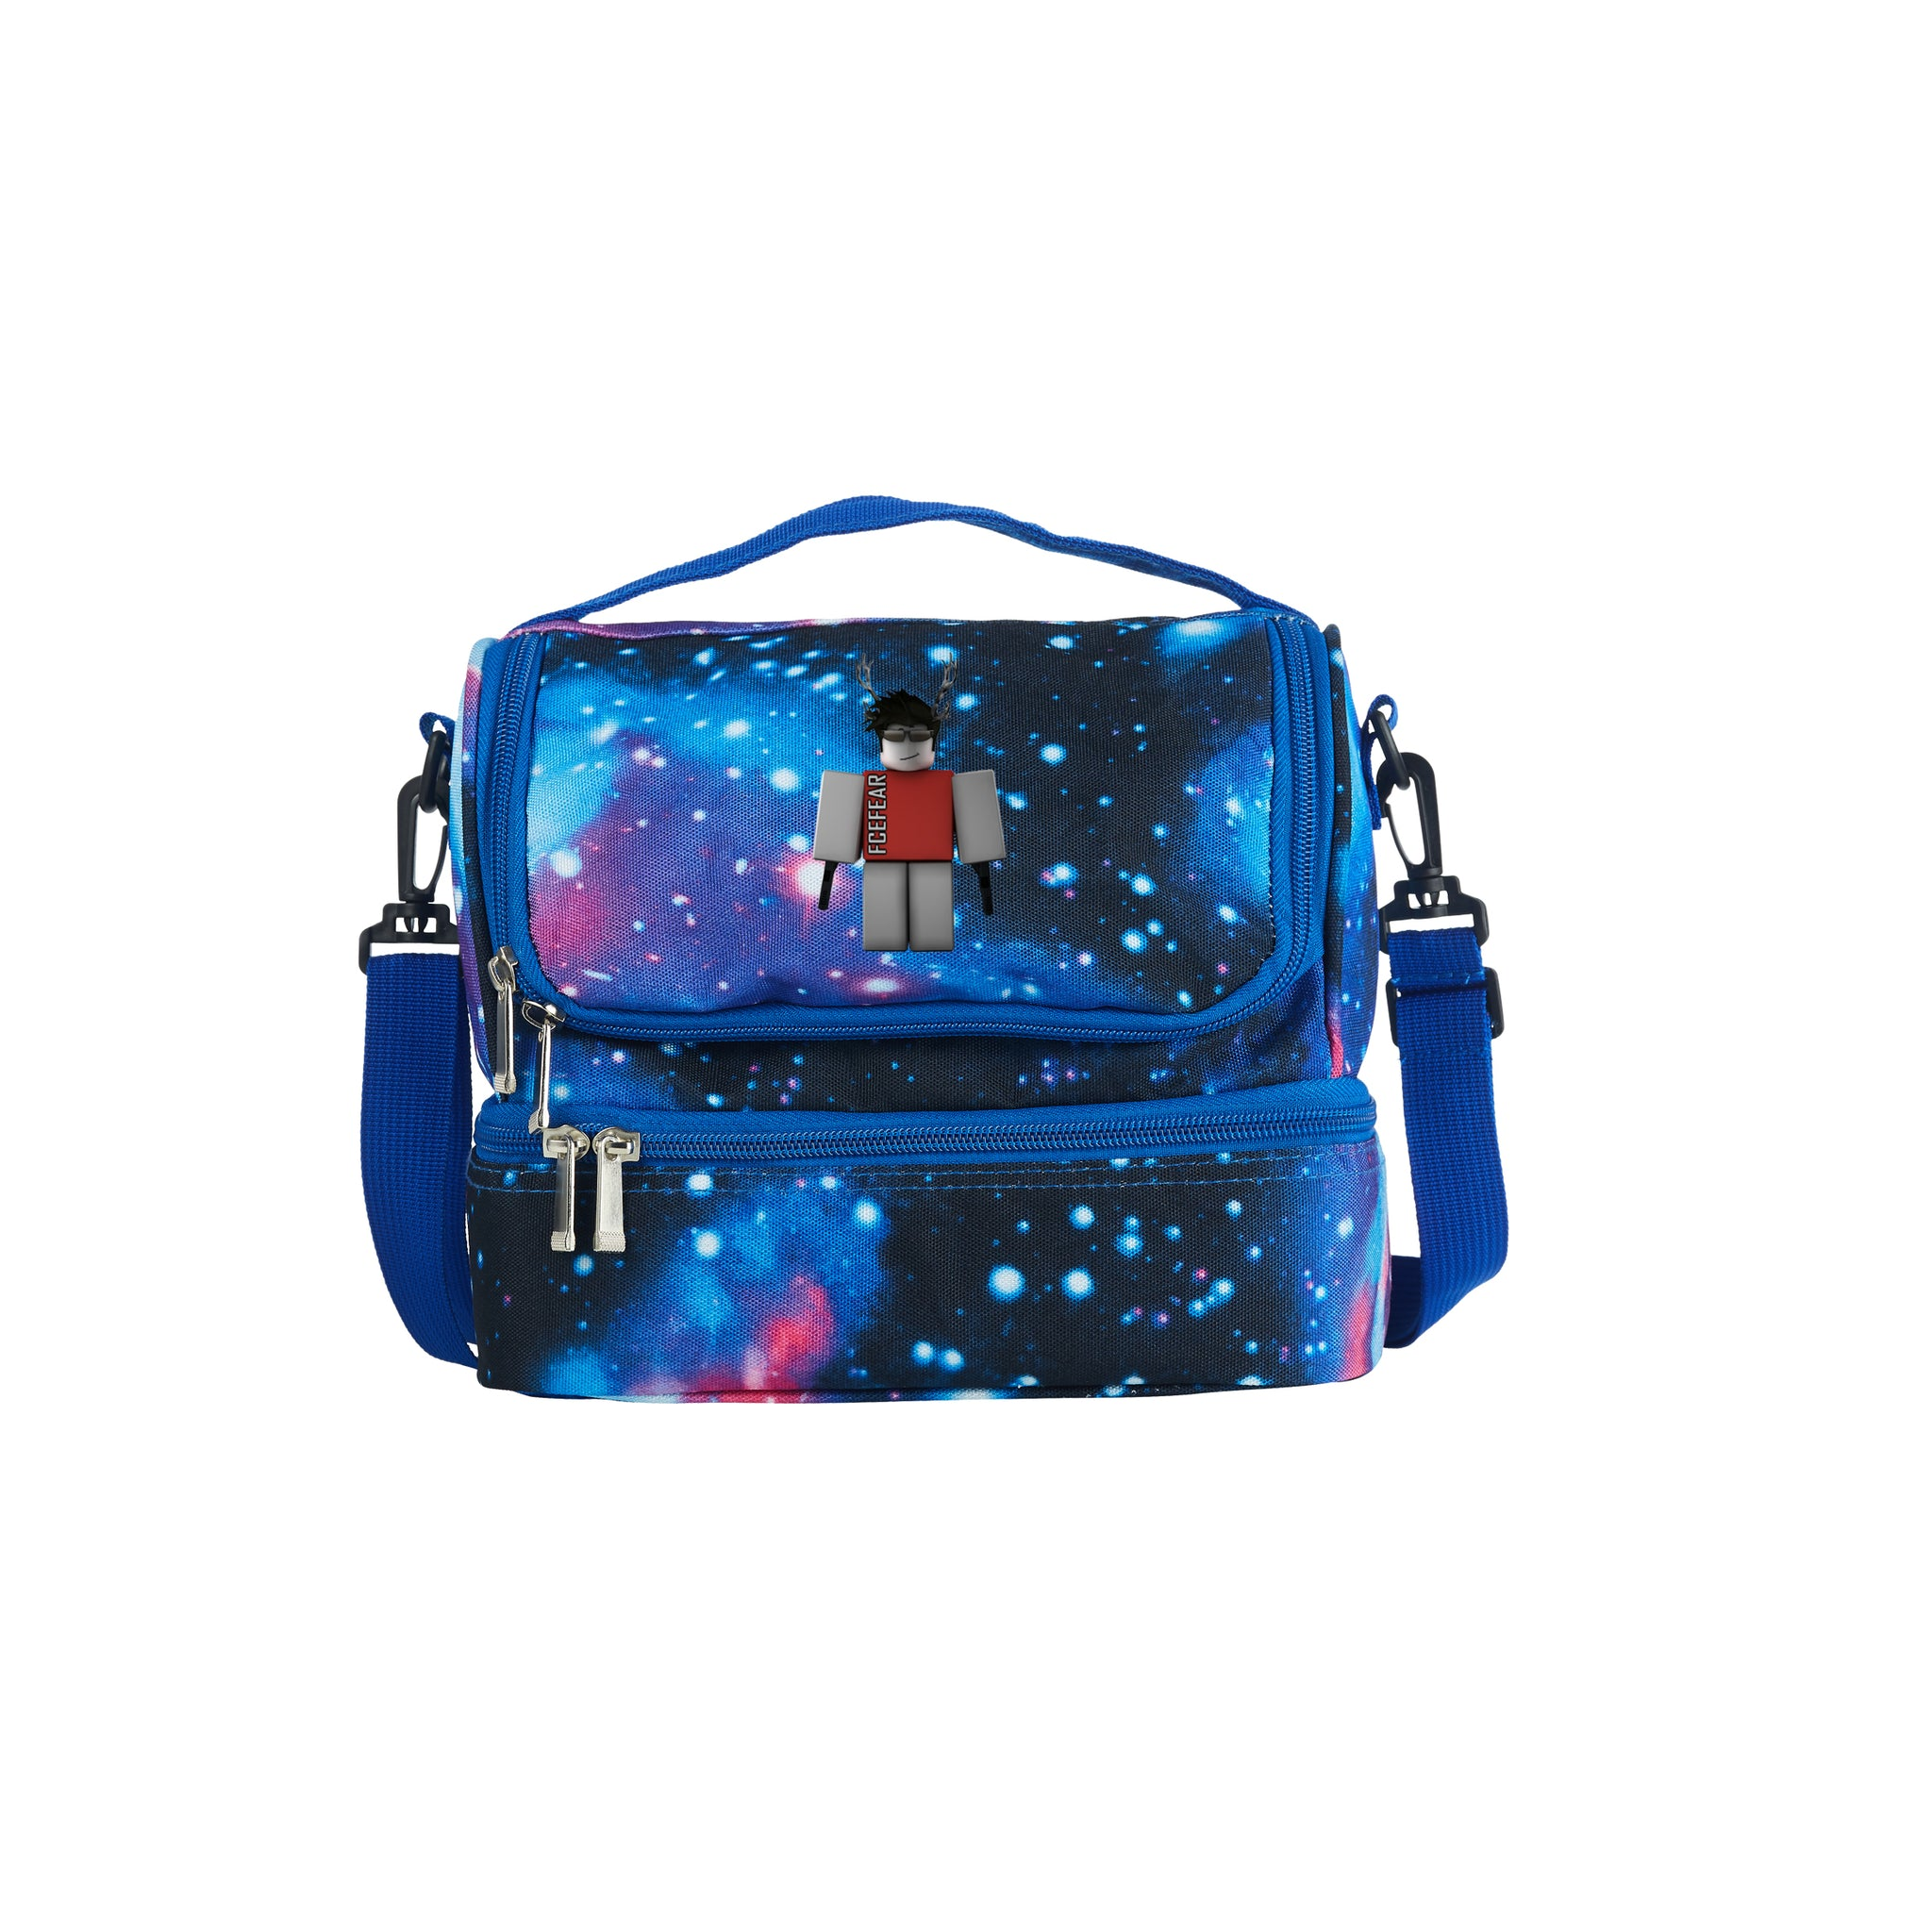 Roblox Serise 2019 Boys Two Compartment Galaxy Lunch Bag